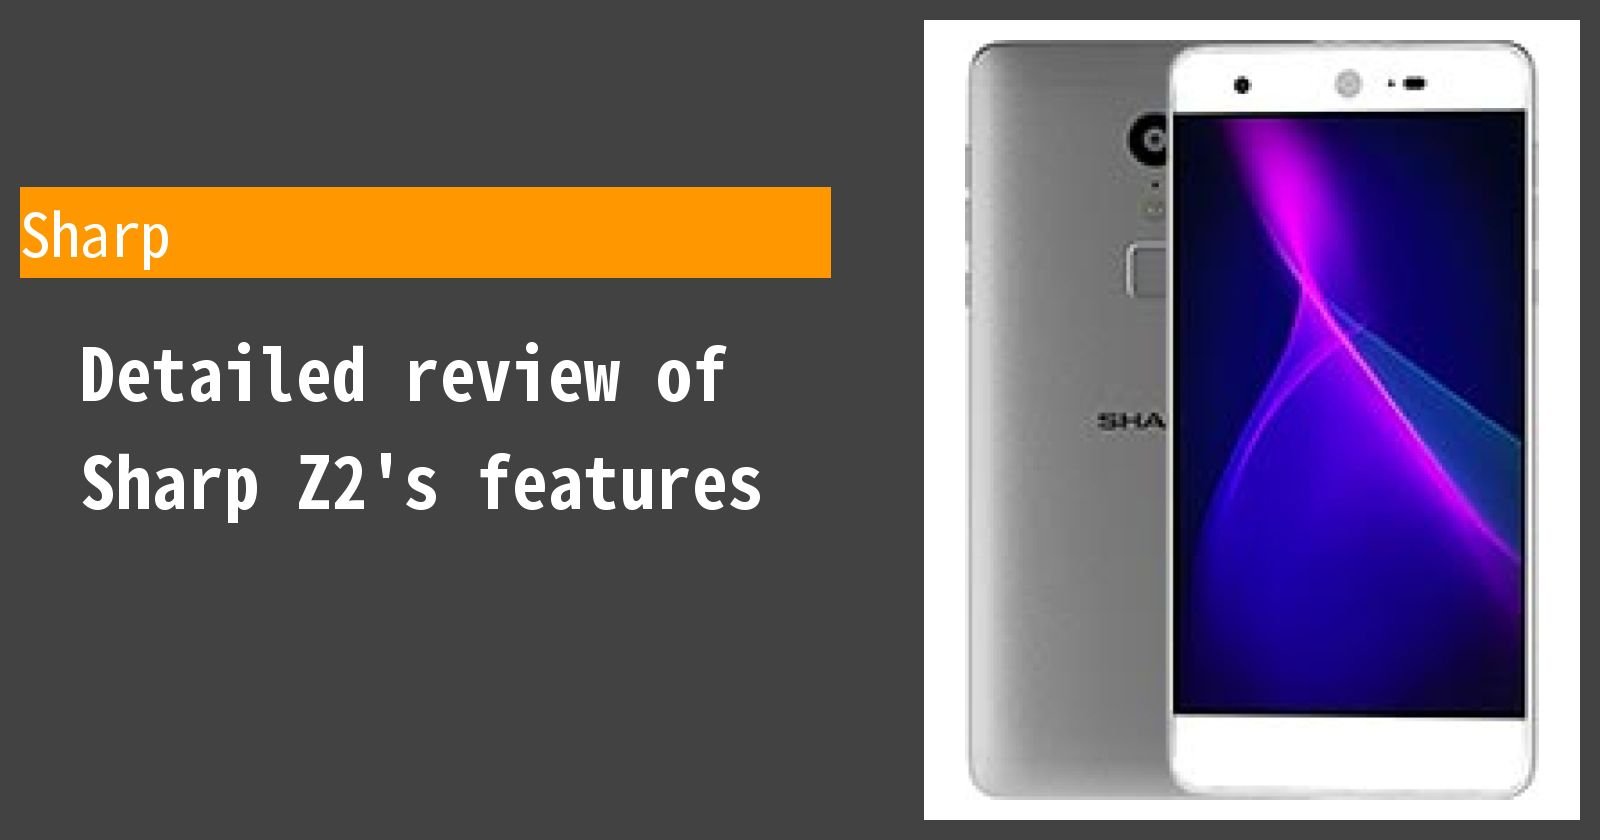 Detailed review of Sharp Z2's features